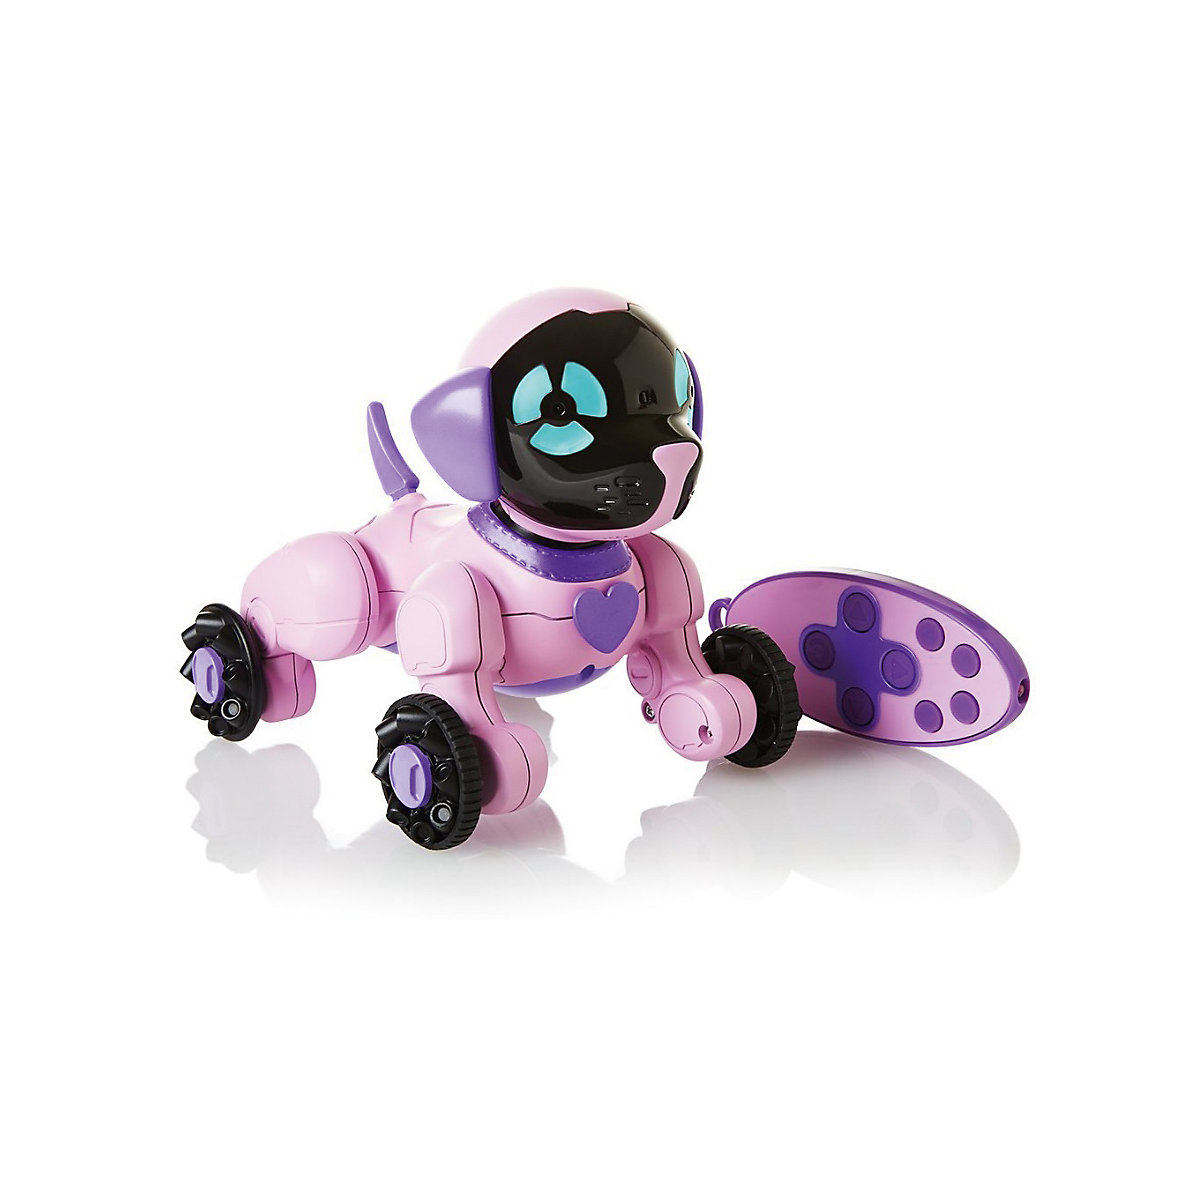 Electronic Pets WowWee 7314002 Tamagochi Robot Toys Interactive Dog Animals Kids decepticons robot lockdown robot famous brand car classic toys for children action figures birthday gift